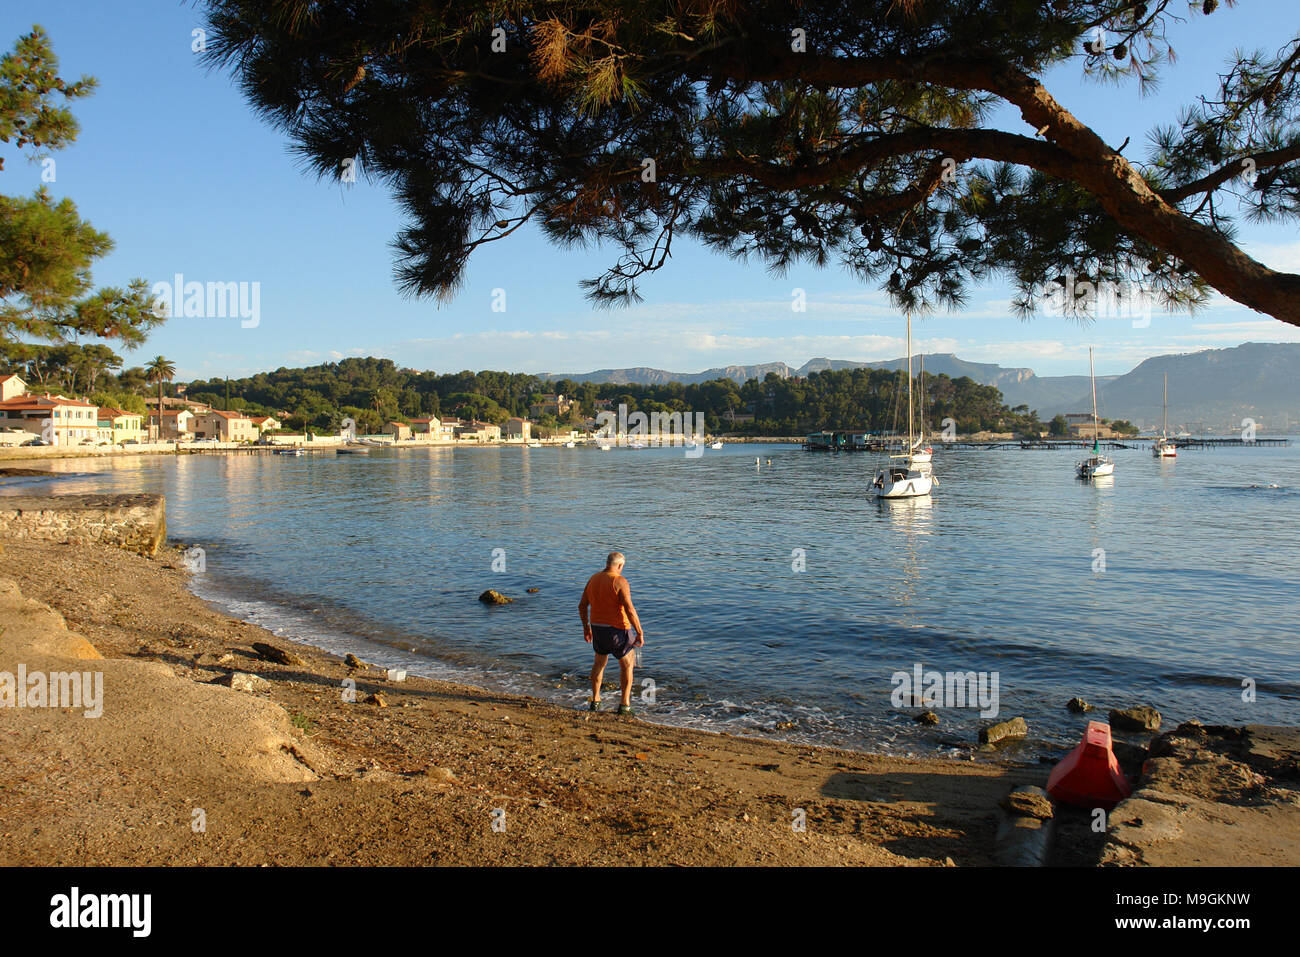 Bather to the natural harbour of Balaguier - Stock Image